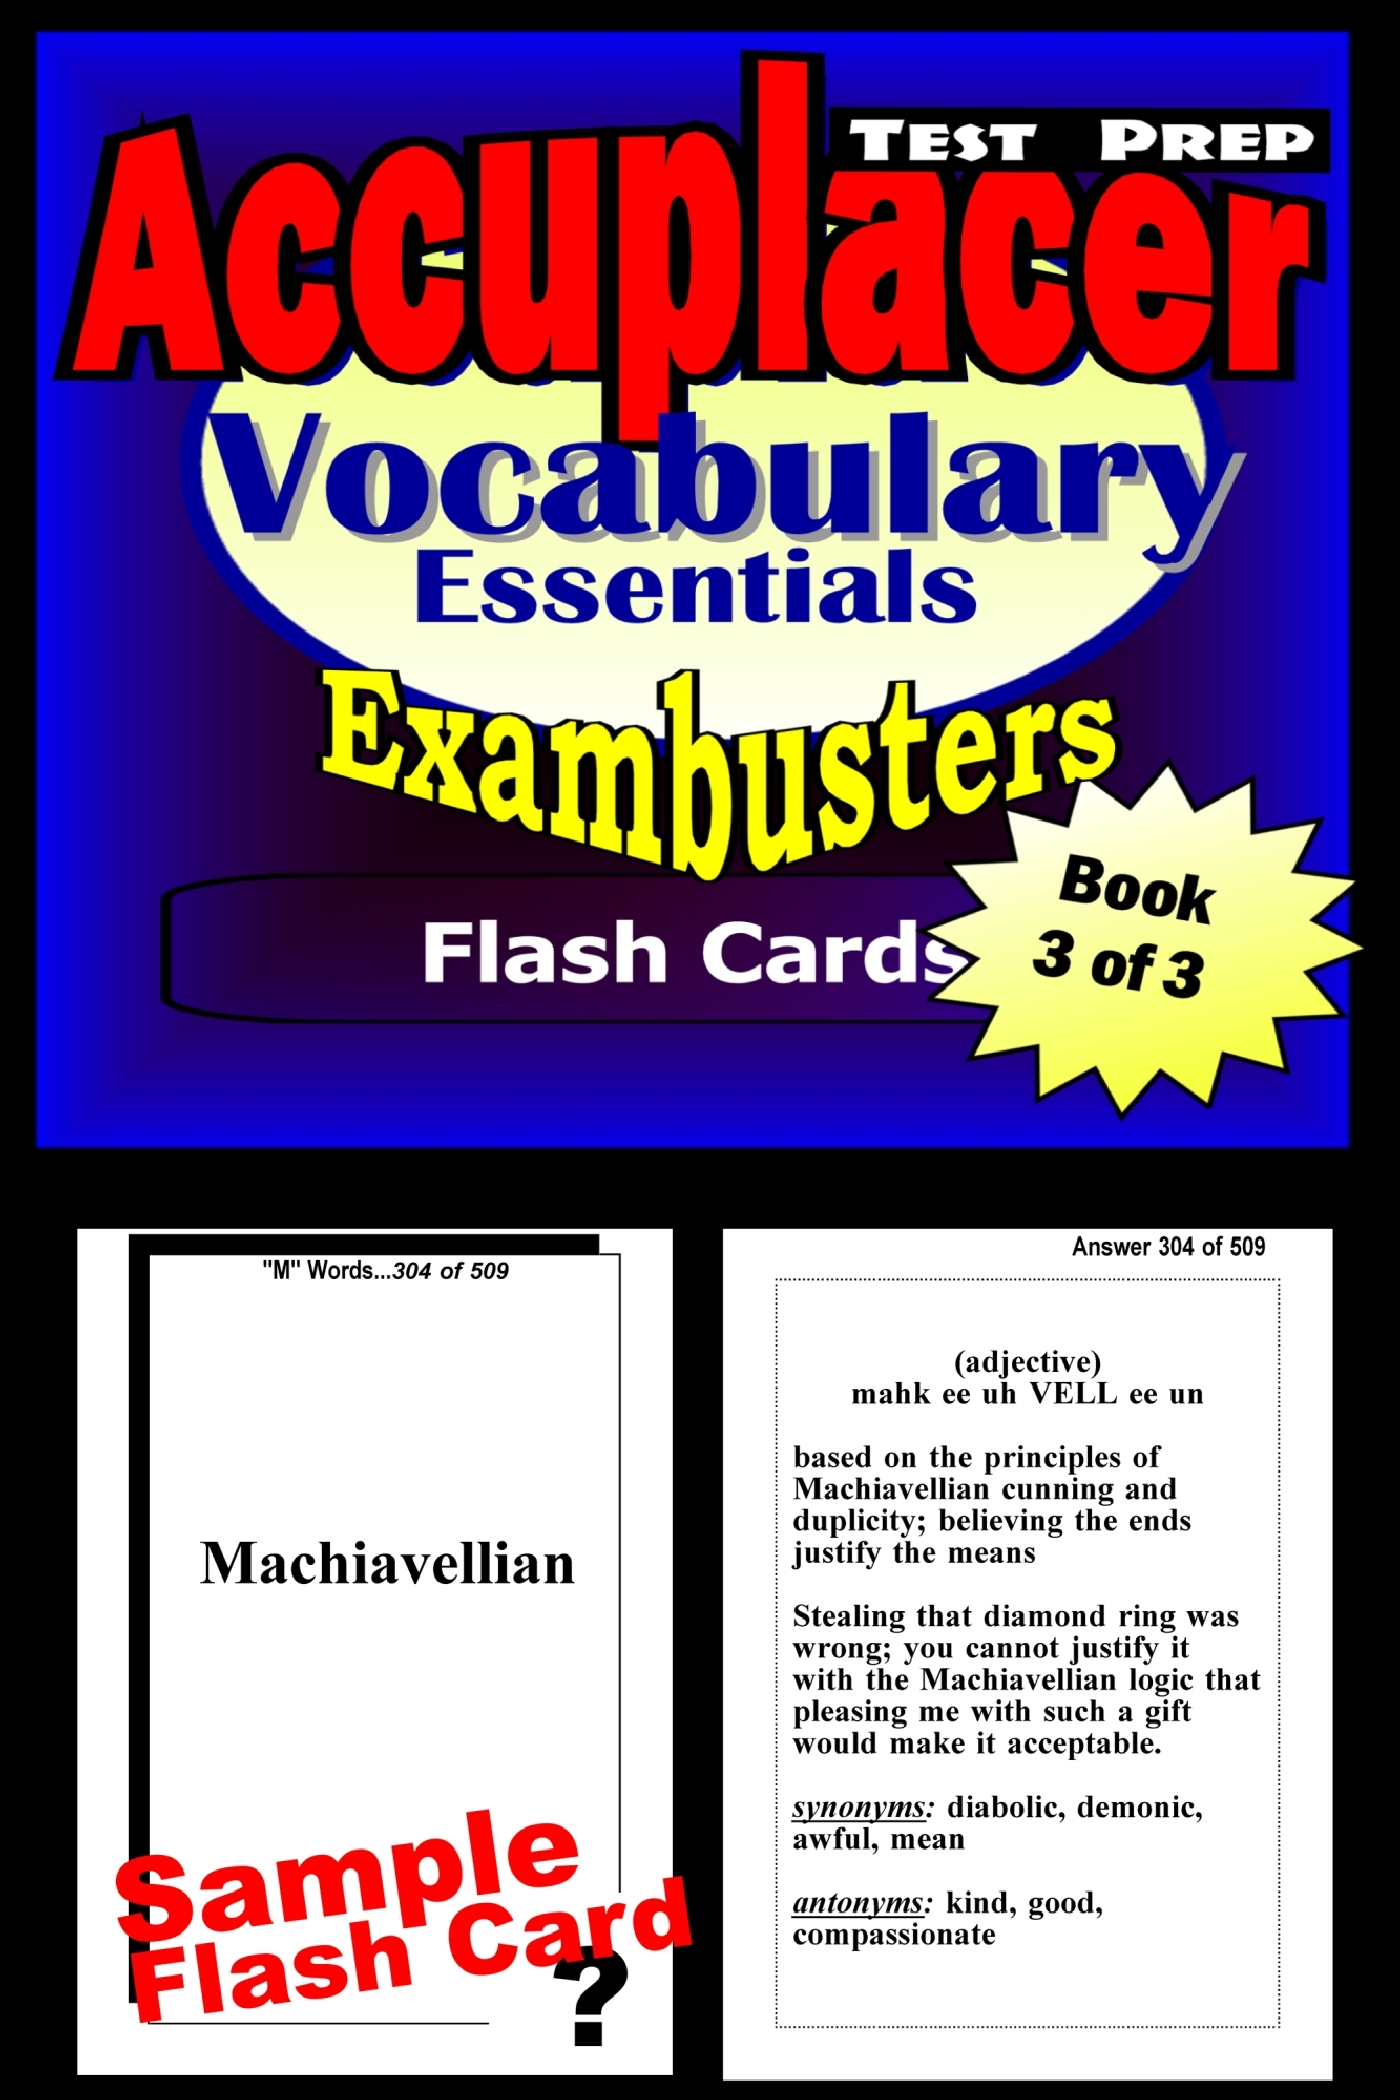 Accuplacer Test Prep Vocabulary Review--Exambusters Flash Cards--Workbook 3 of 3: Accuplacer Exam Study Guide